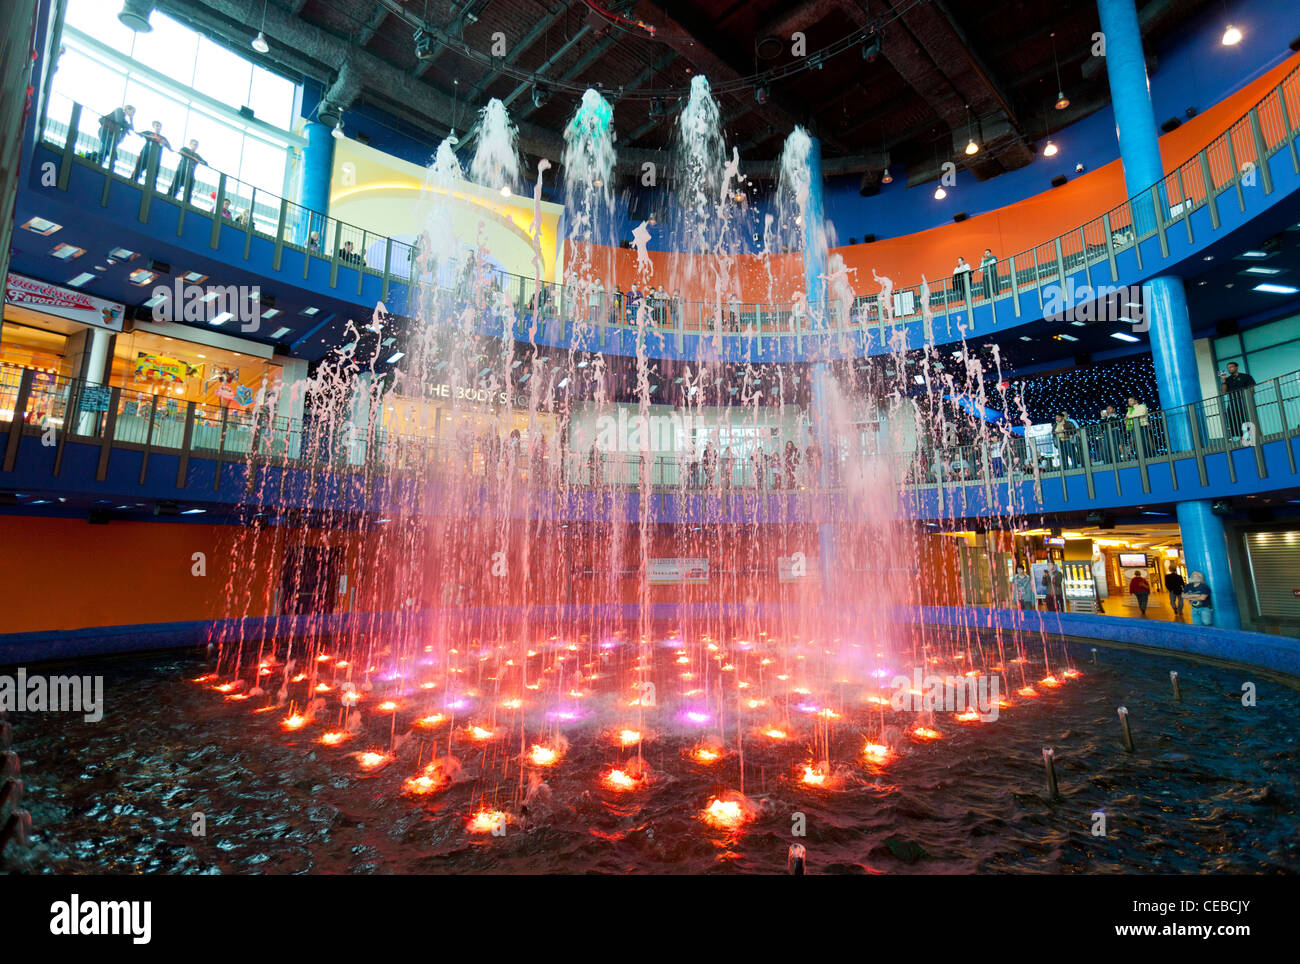 Brightly colored dancing water fountain display in a shopping mall with shoppers enjoying the show. - Stock Image